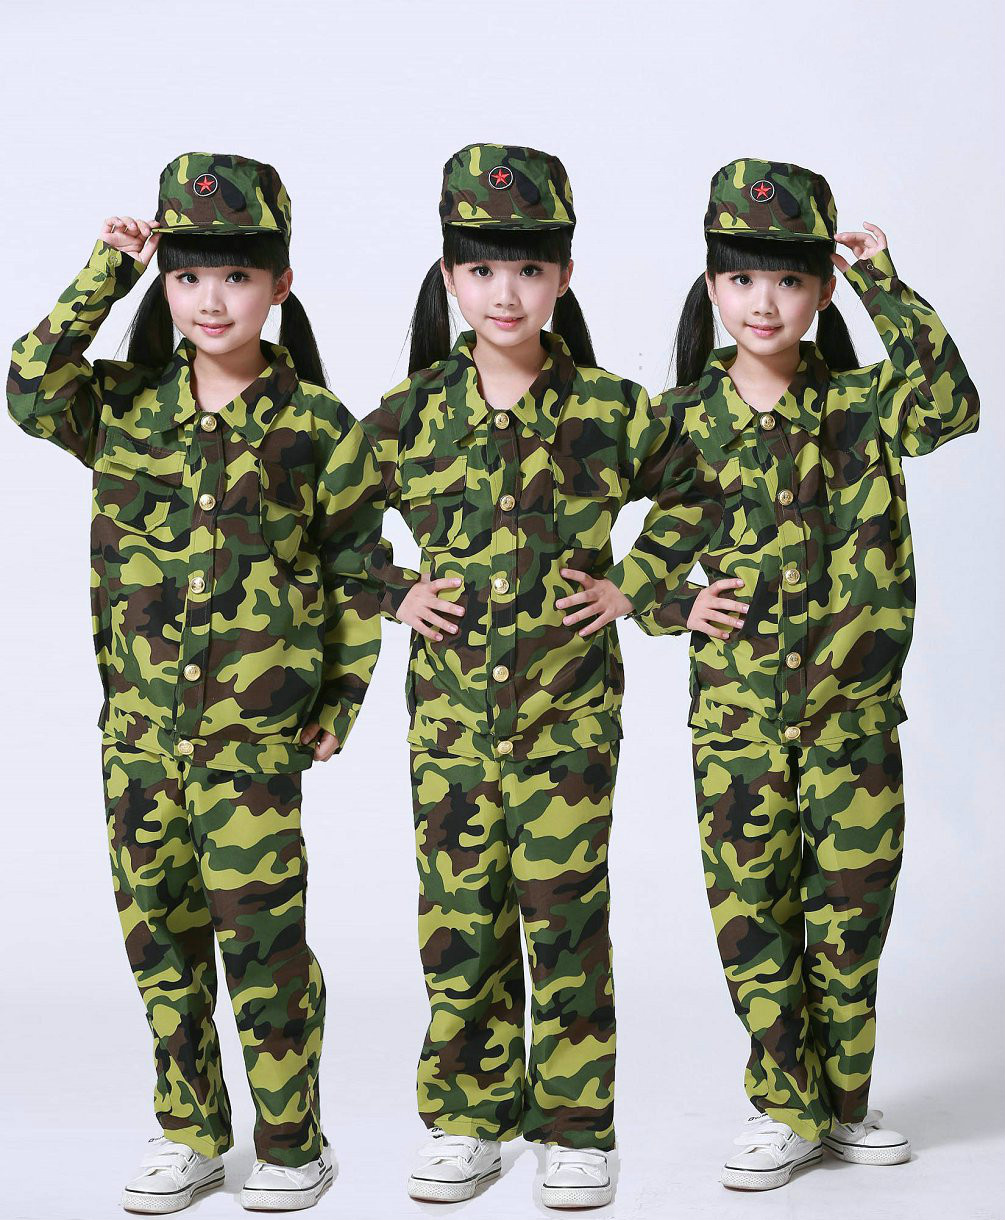 Childrens Military Uniform Camouflage Clothing Tactical Camouflage Paintball Uniform for Kids Outdoor School Military Training